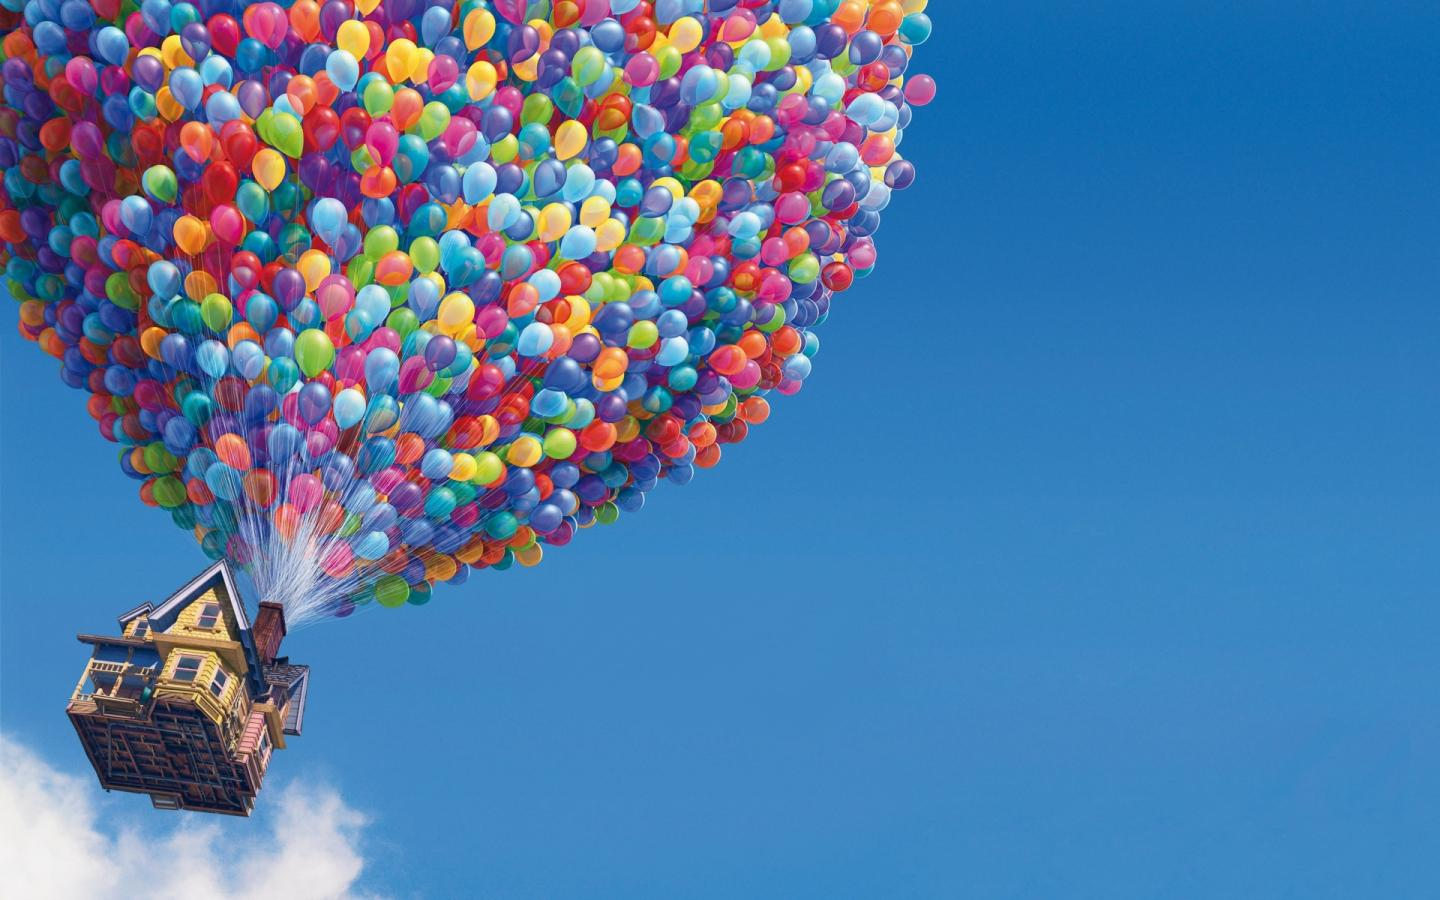 http://3.bp.blogspot.com/-0QmRq1VgYnA/USjmQTb2cmI/AAAAAAAAAqk/JSK9AZxLWQA/s1600/Pixar_Up_Movie_HD_Wallpaper_www.Vvallpaper.Net_3.jpg